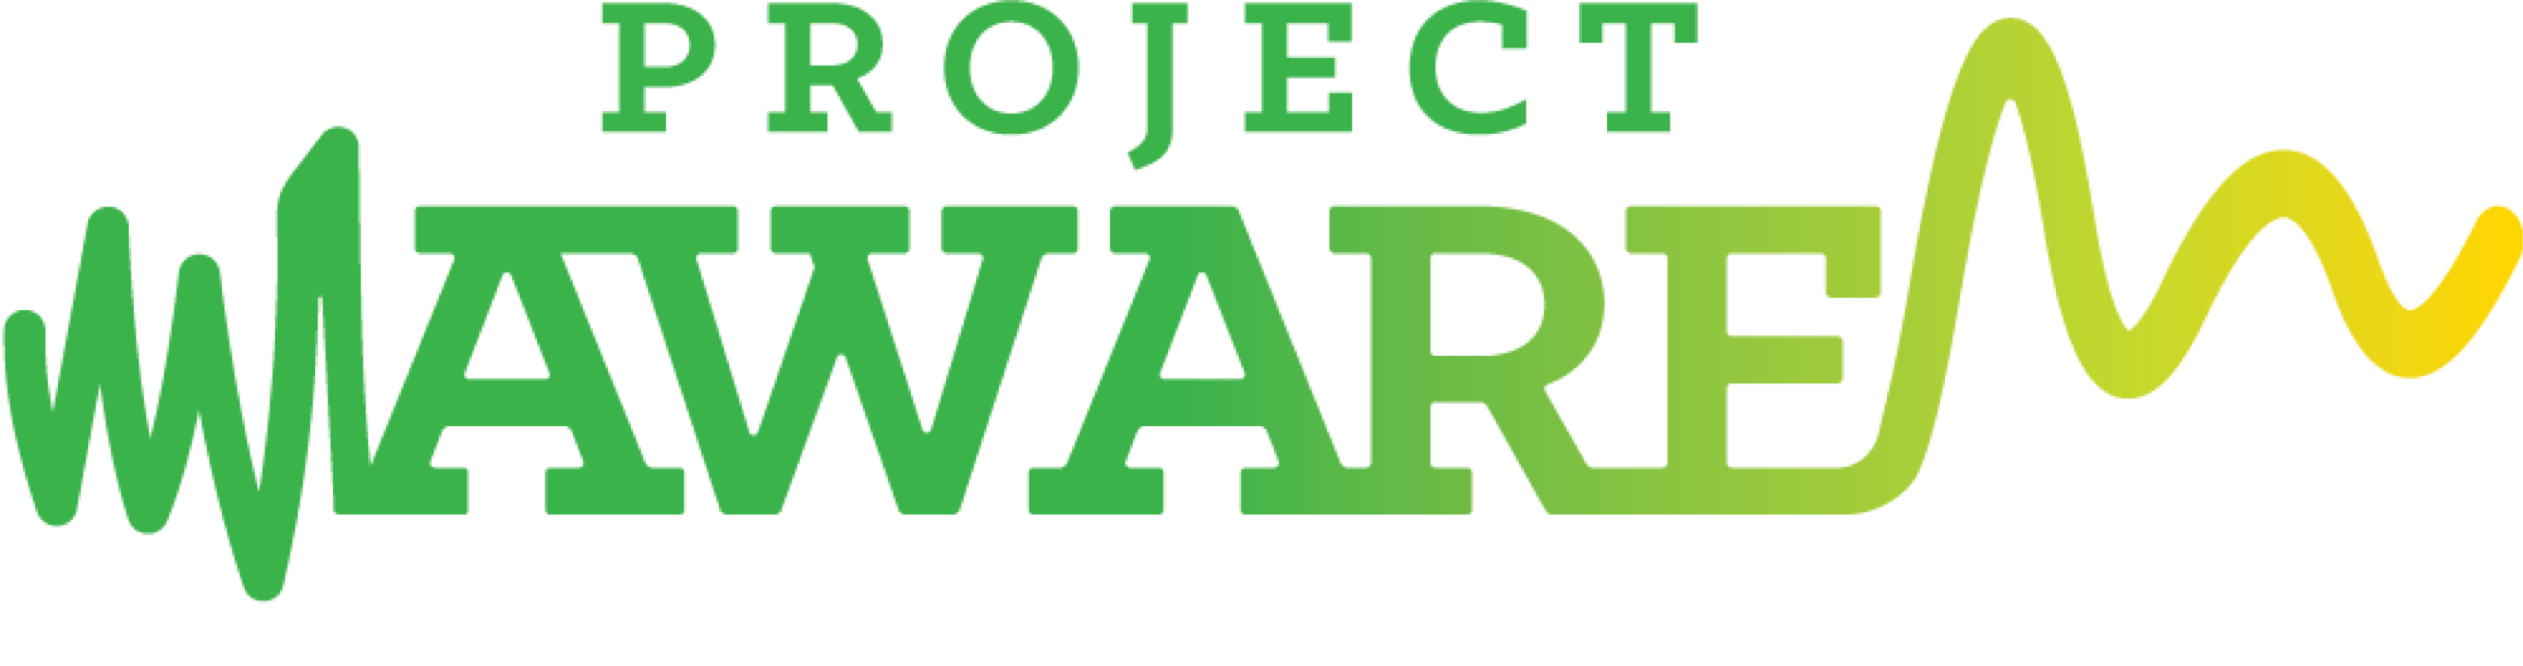 Project Aware Logo PNG Image